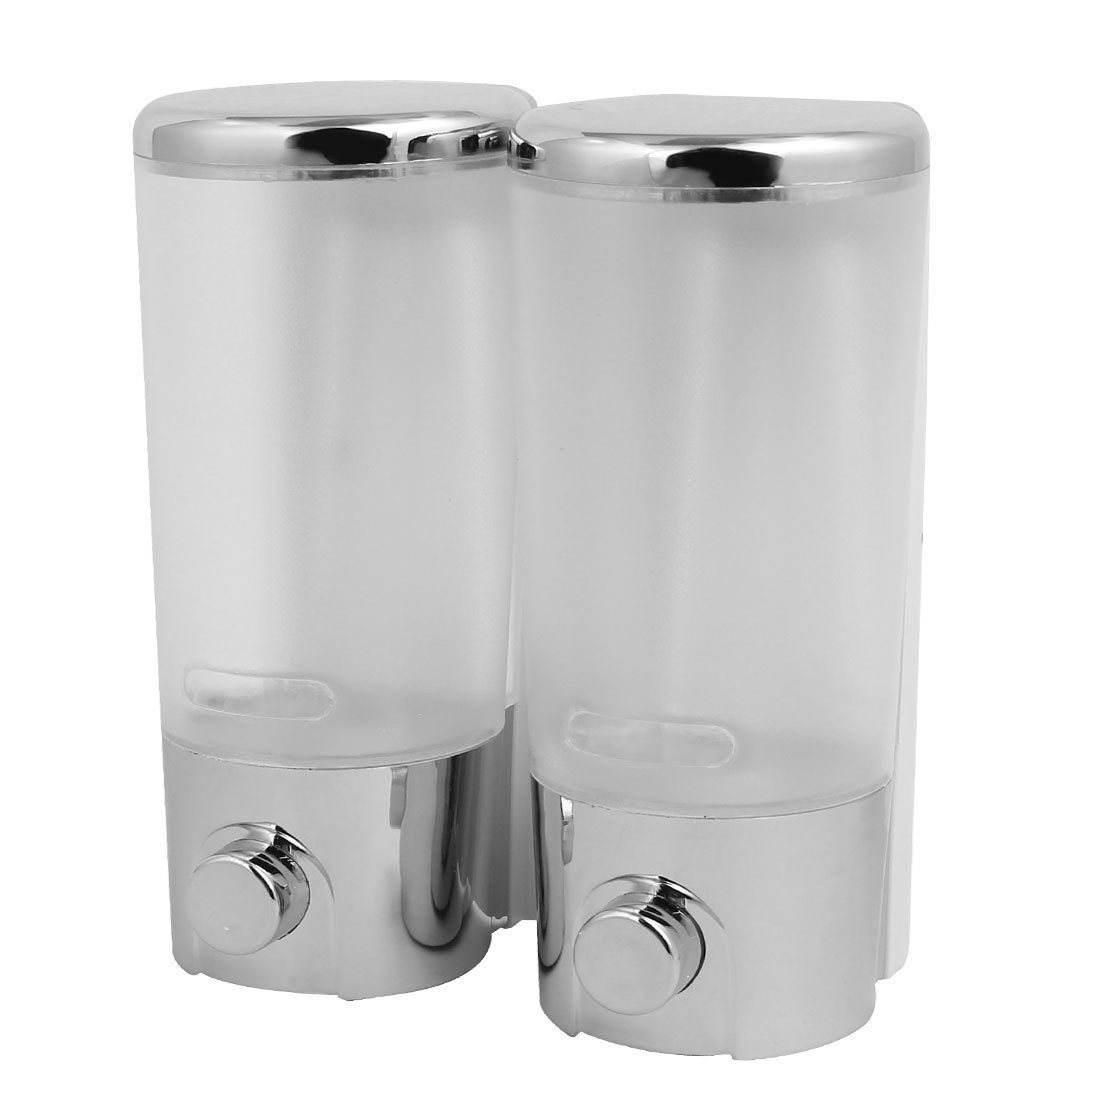 ABS Plastic Chrome Plated Wall Mount Double Chember Soap Dispenser, 13OZ Each